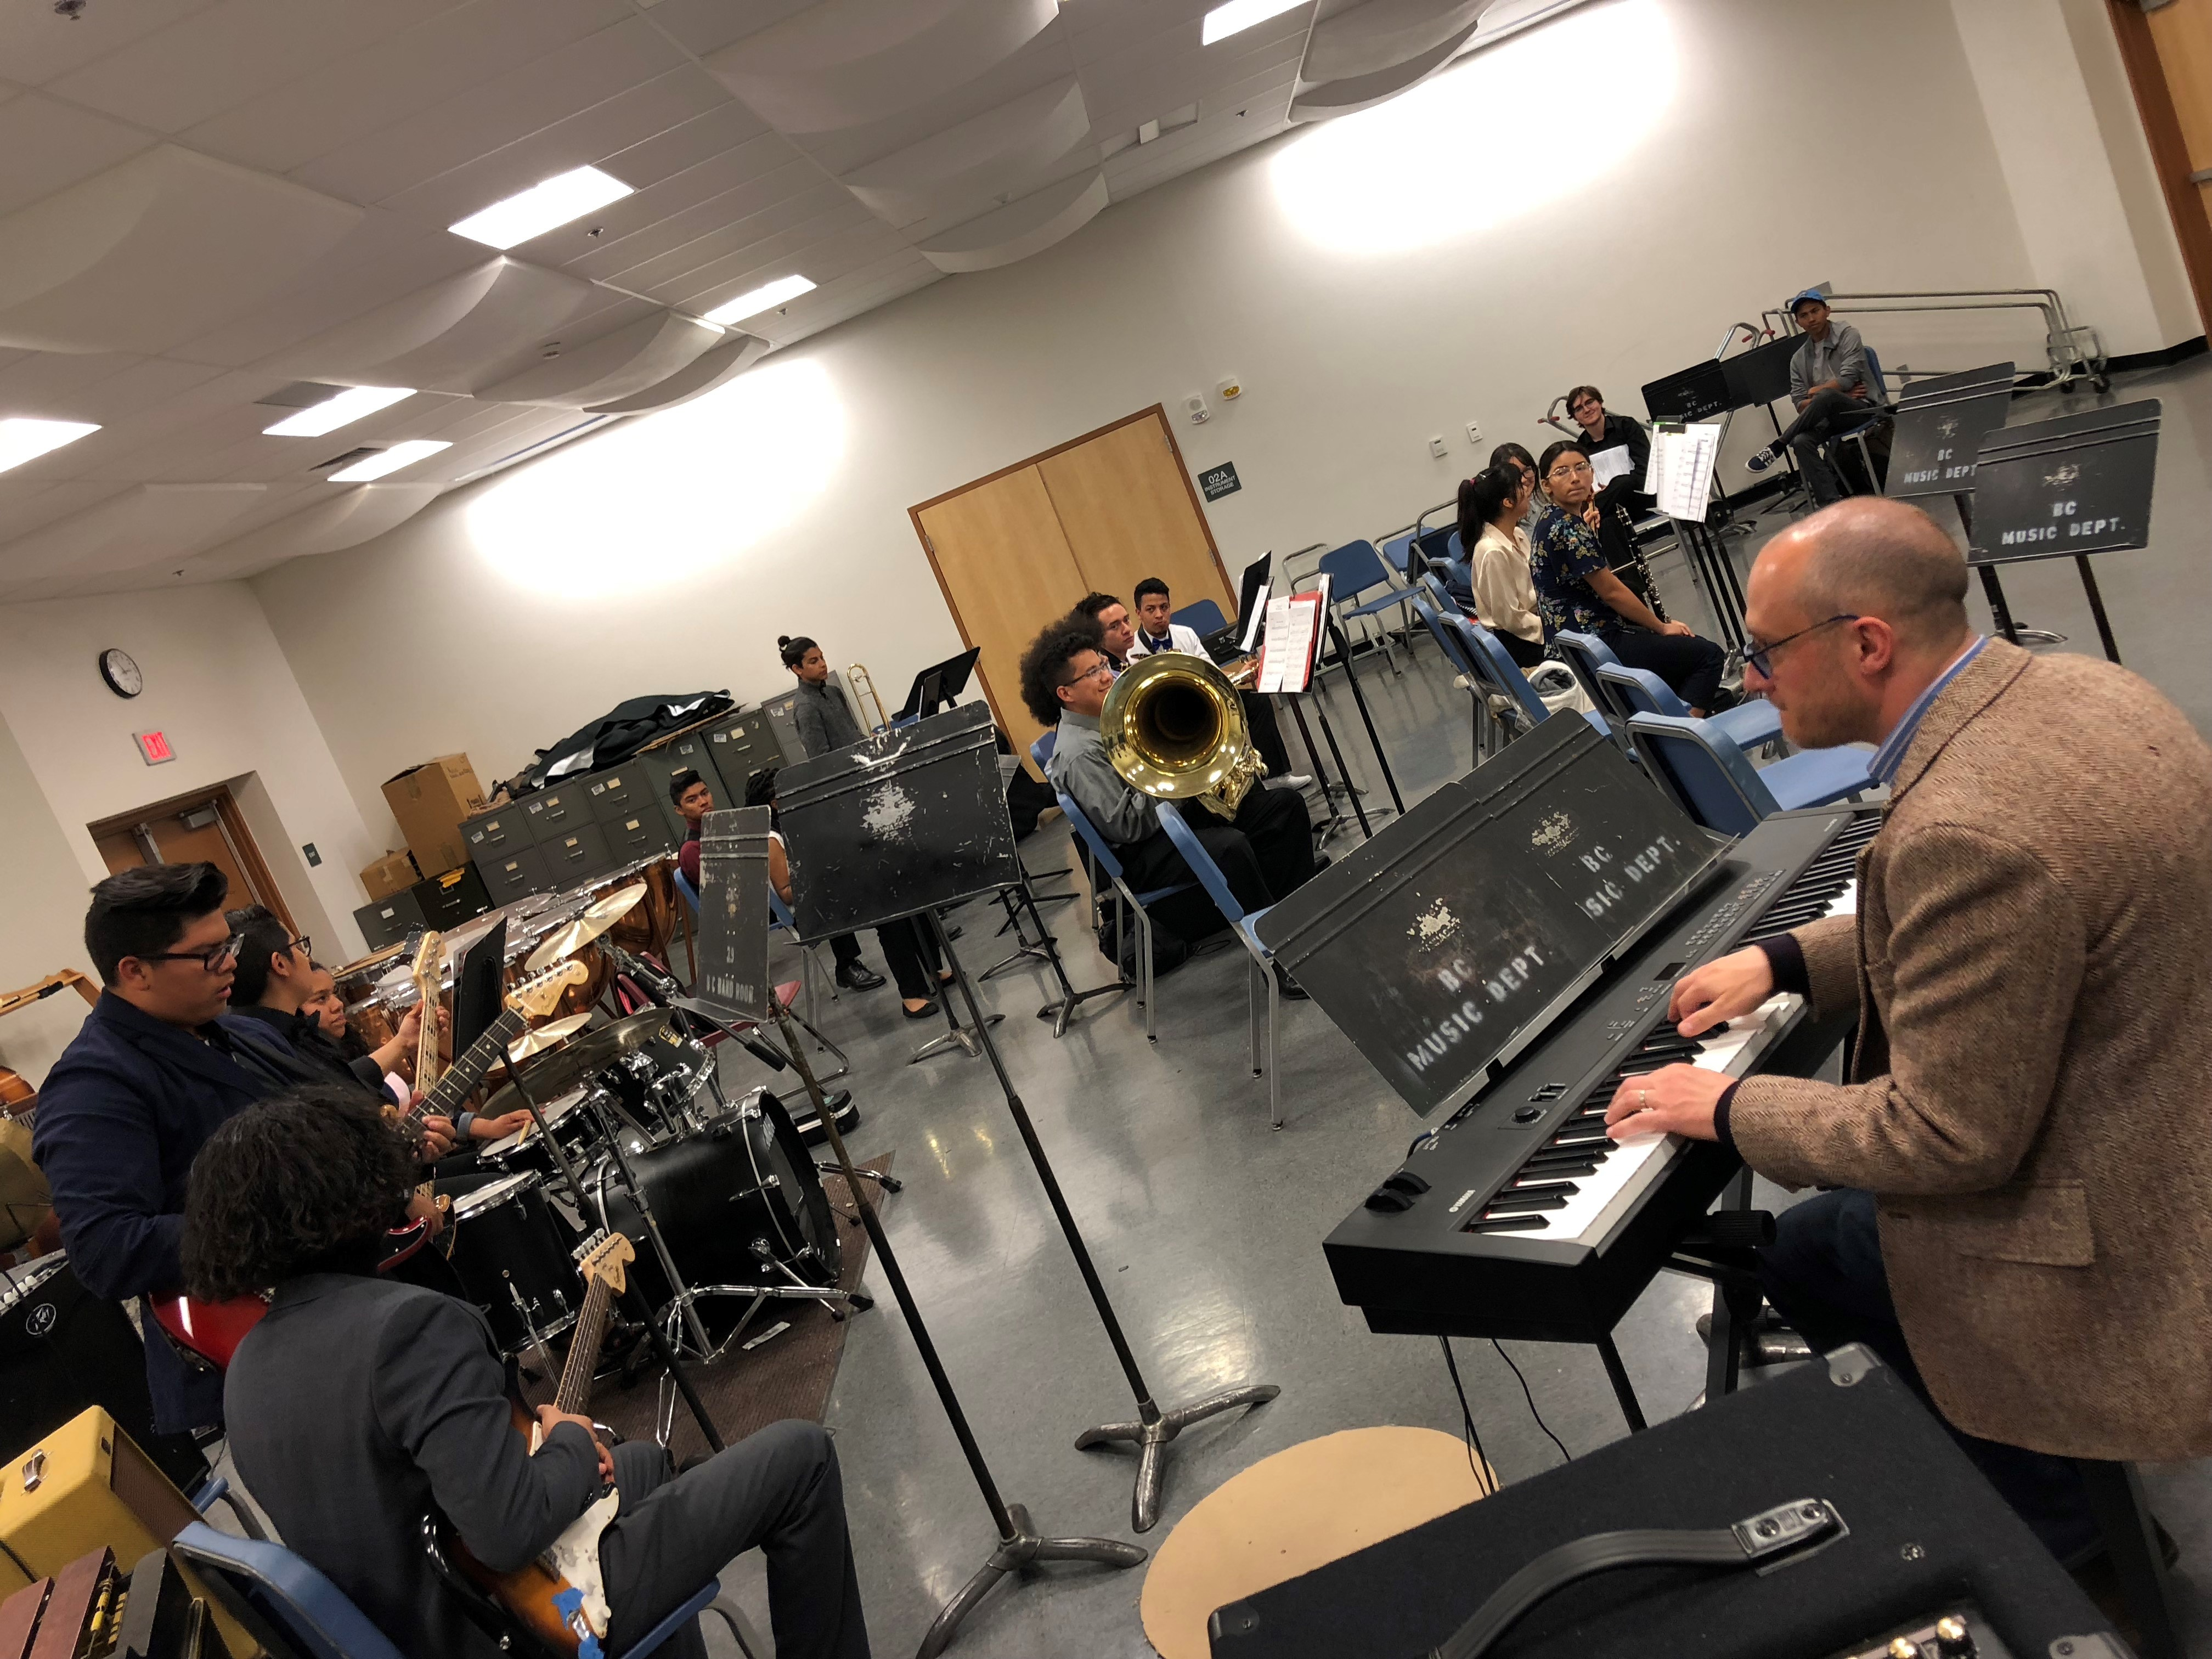 Head clinician Adam Benjamin works with students from Mira Monte High School